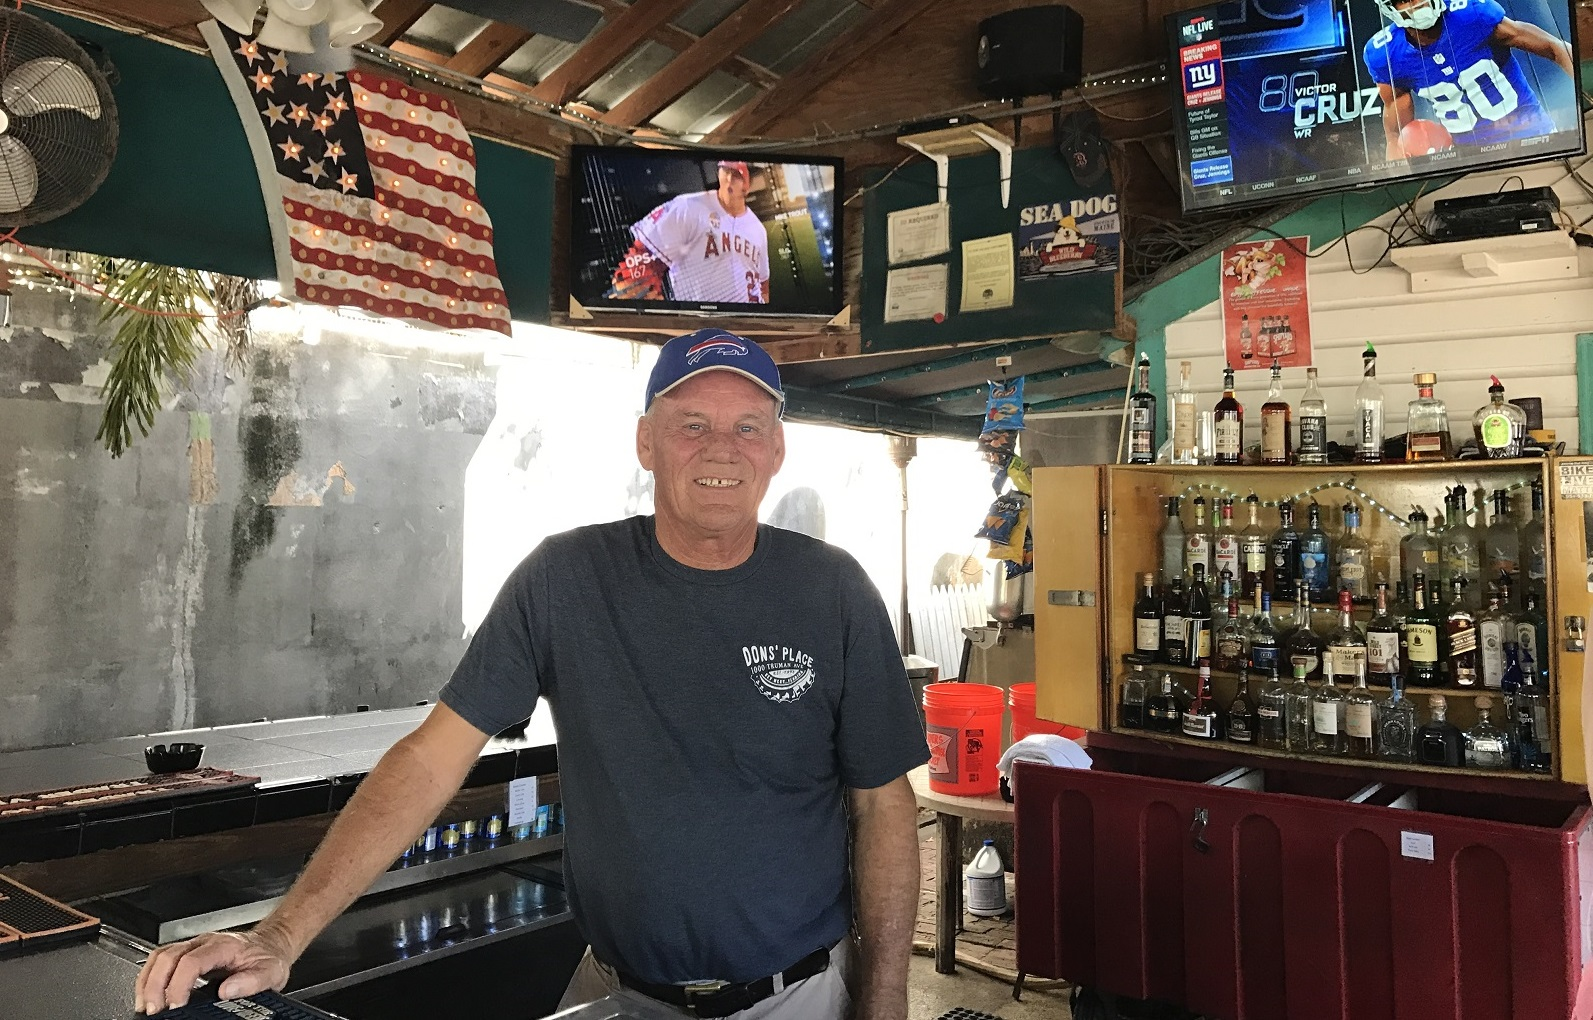 Buffalo native Don Manaher gave up his snow shovel to run a bar in Key West that now attracts Buffalo visitors as well as Key West locals. (Elizabeth Carey/Special to The News)